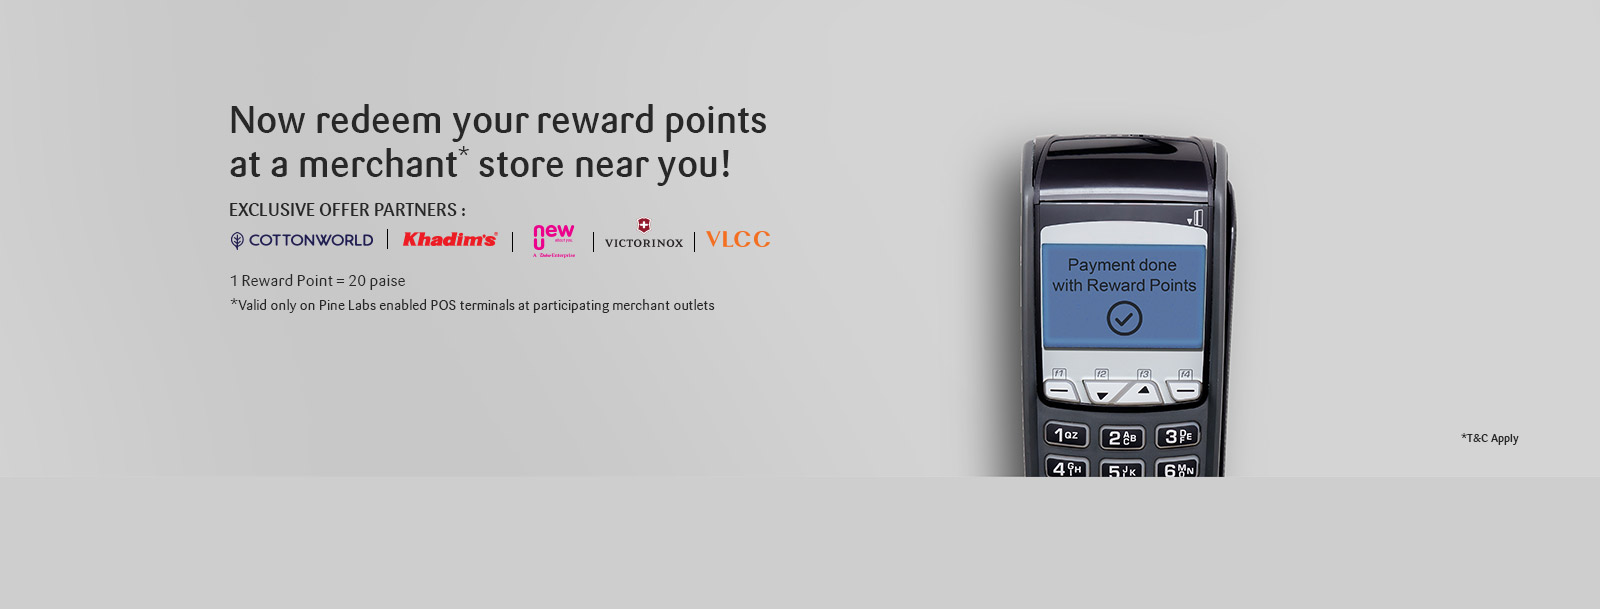 SBI Credit Card Rewards - Redeem Reward Points | SBI Cards